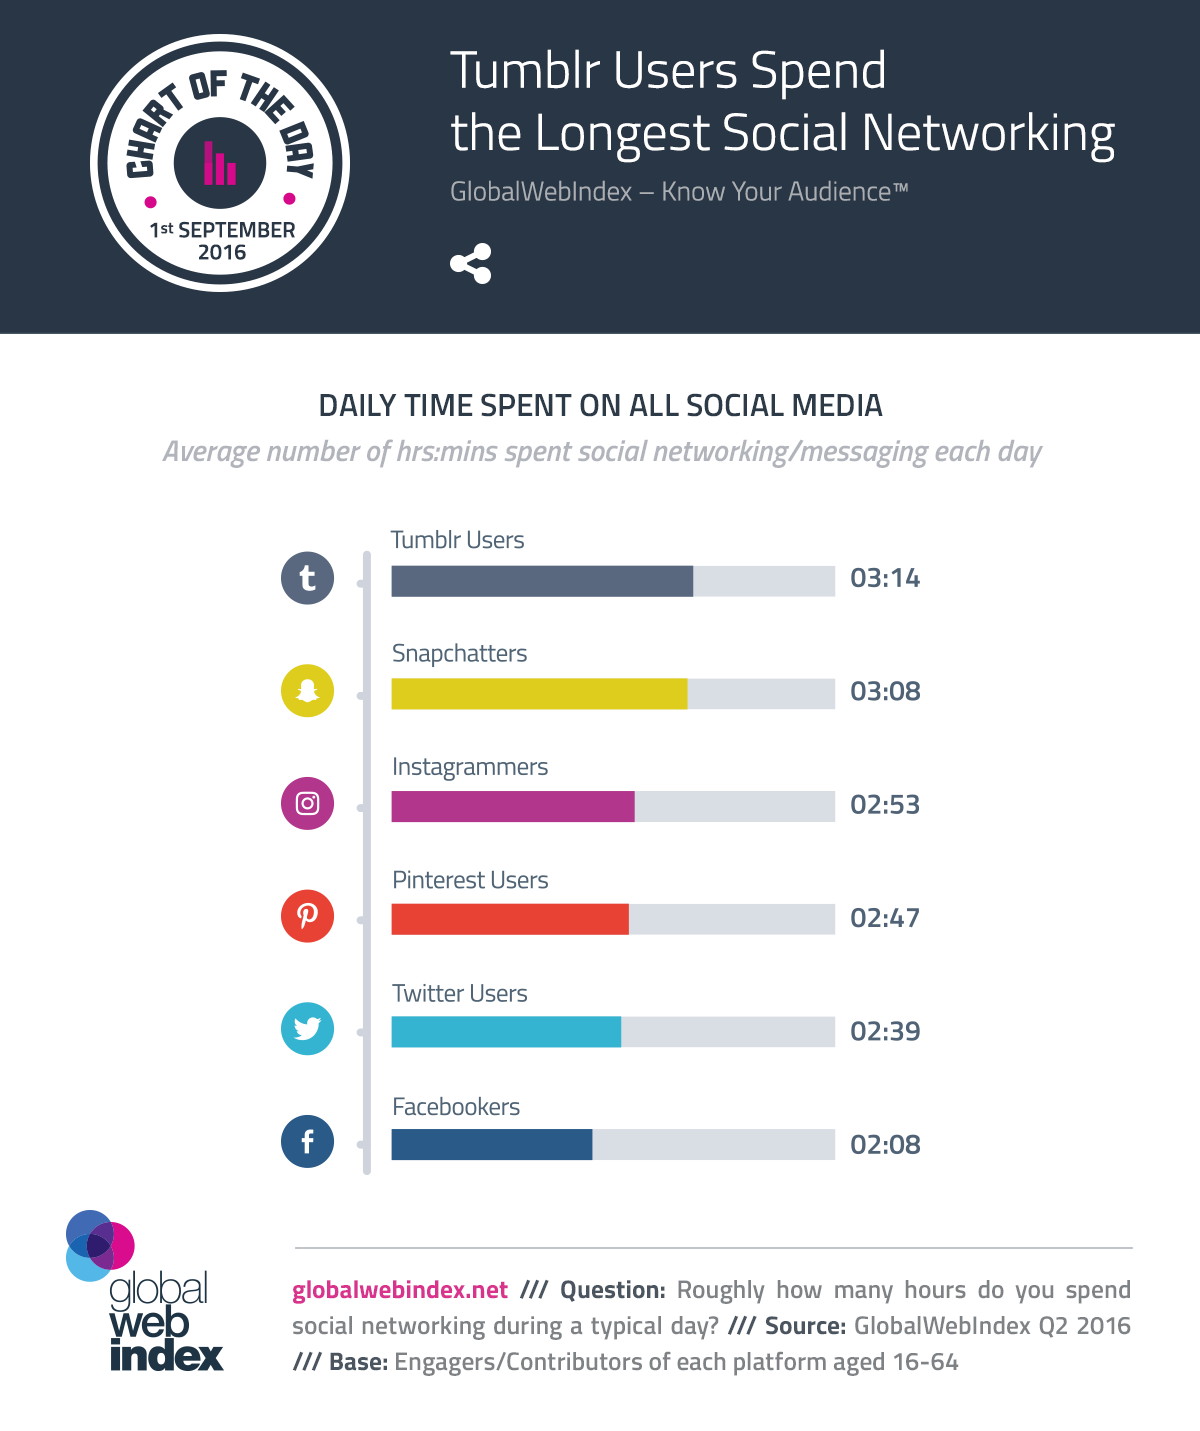 Tumblr Users Spend the Longest Social Networking